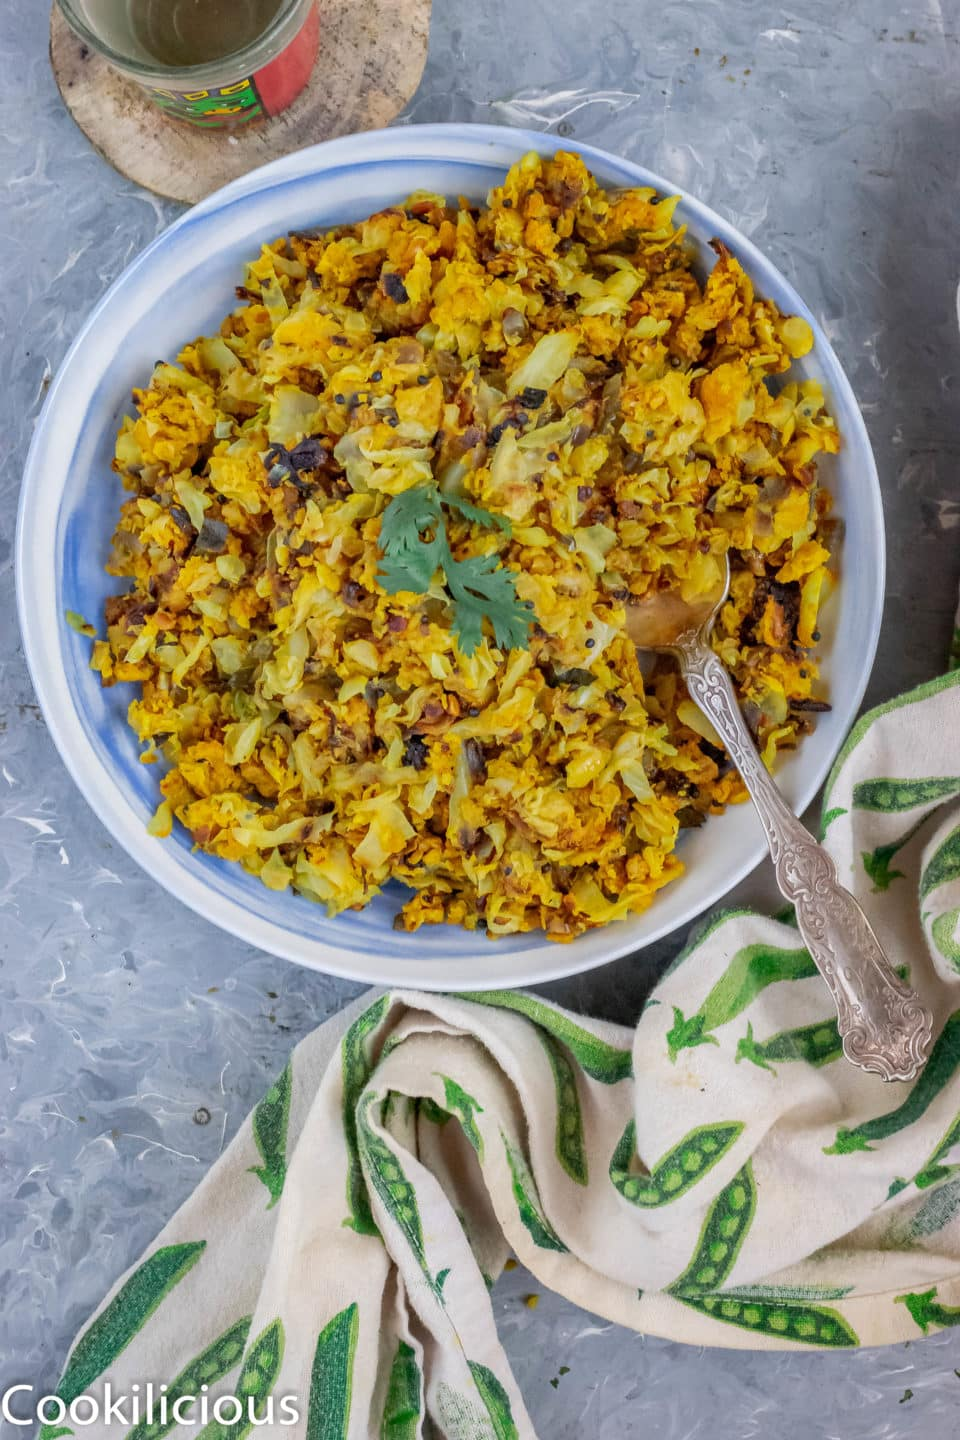 Cabbage & Chickpea Flour/Besan Stir-Fry in a bowl with a spoon in it